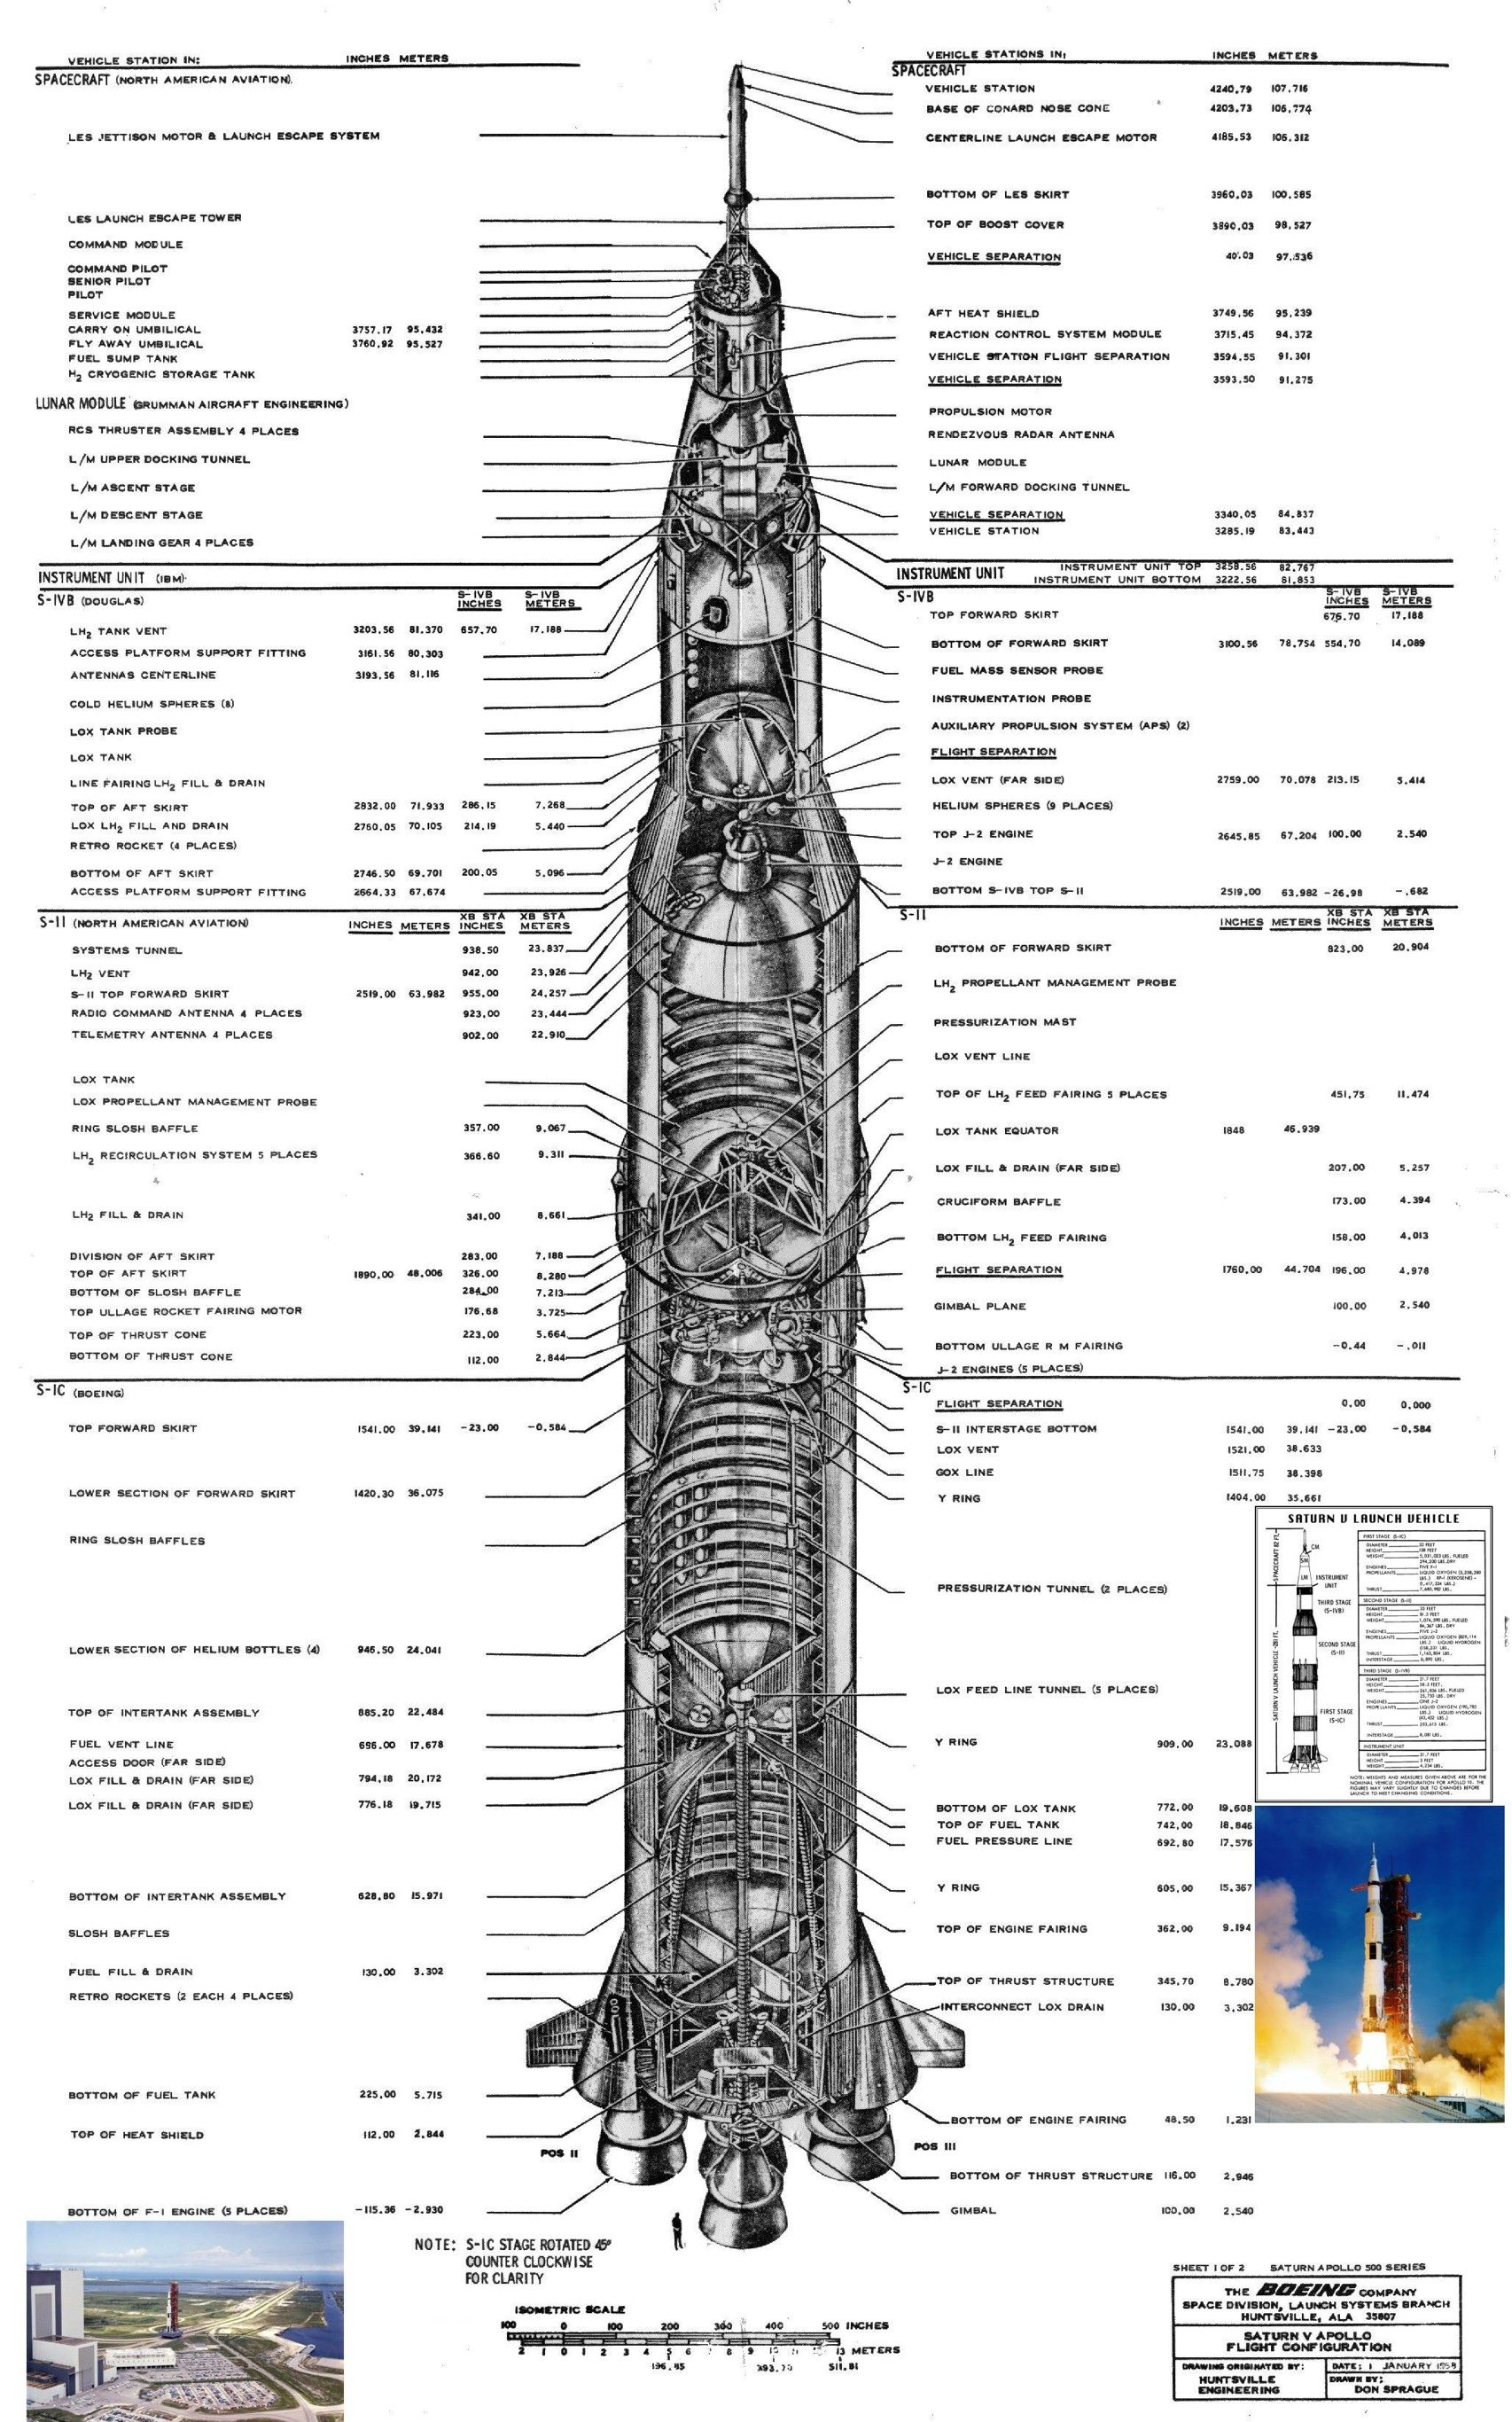 Diagram Of The Saturn V Rocket Cut In Half Adafruit